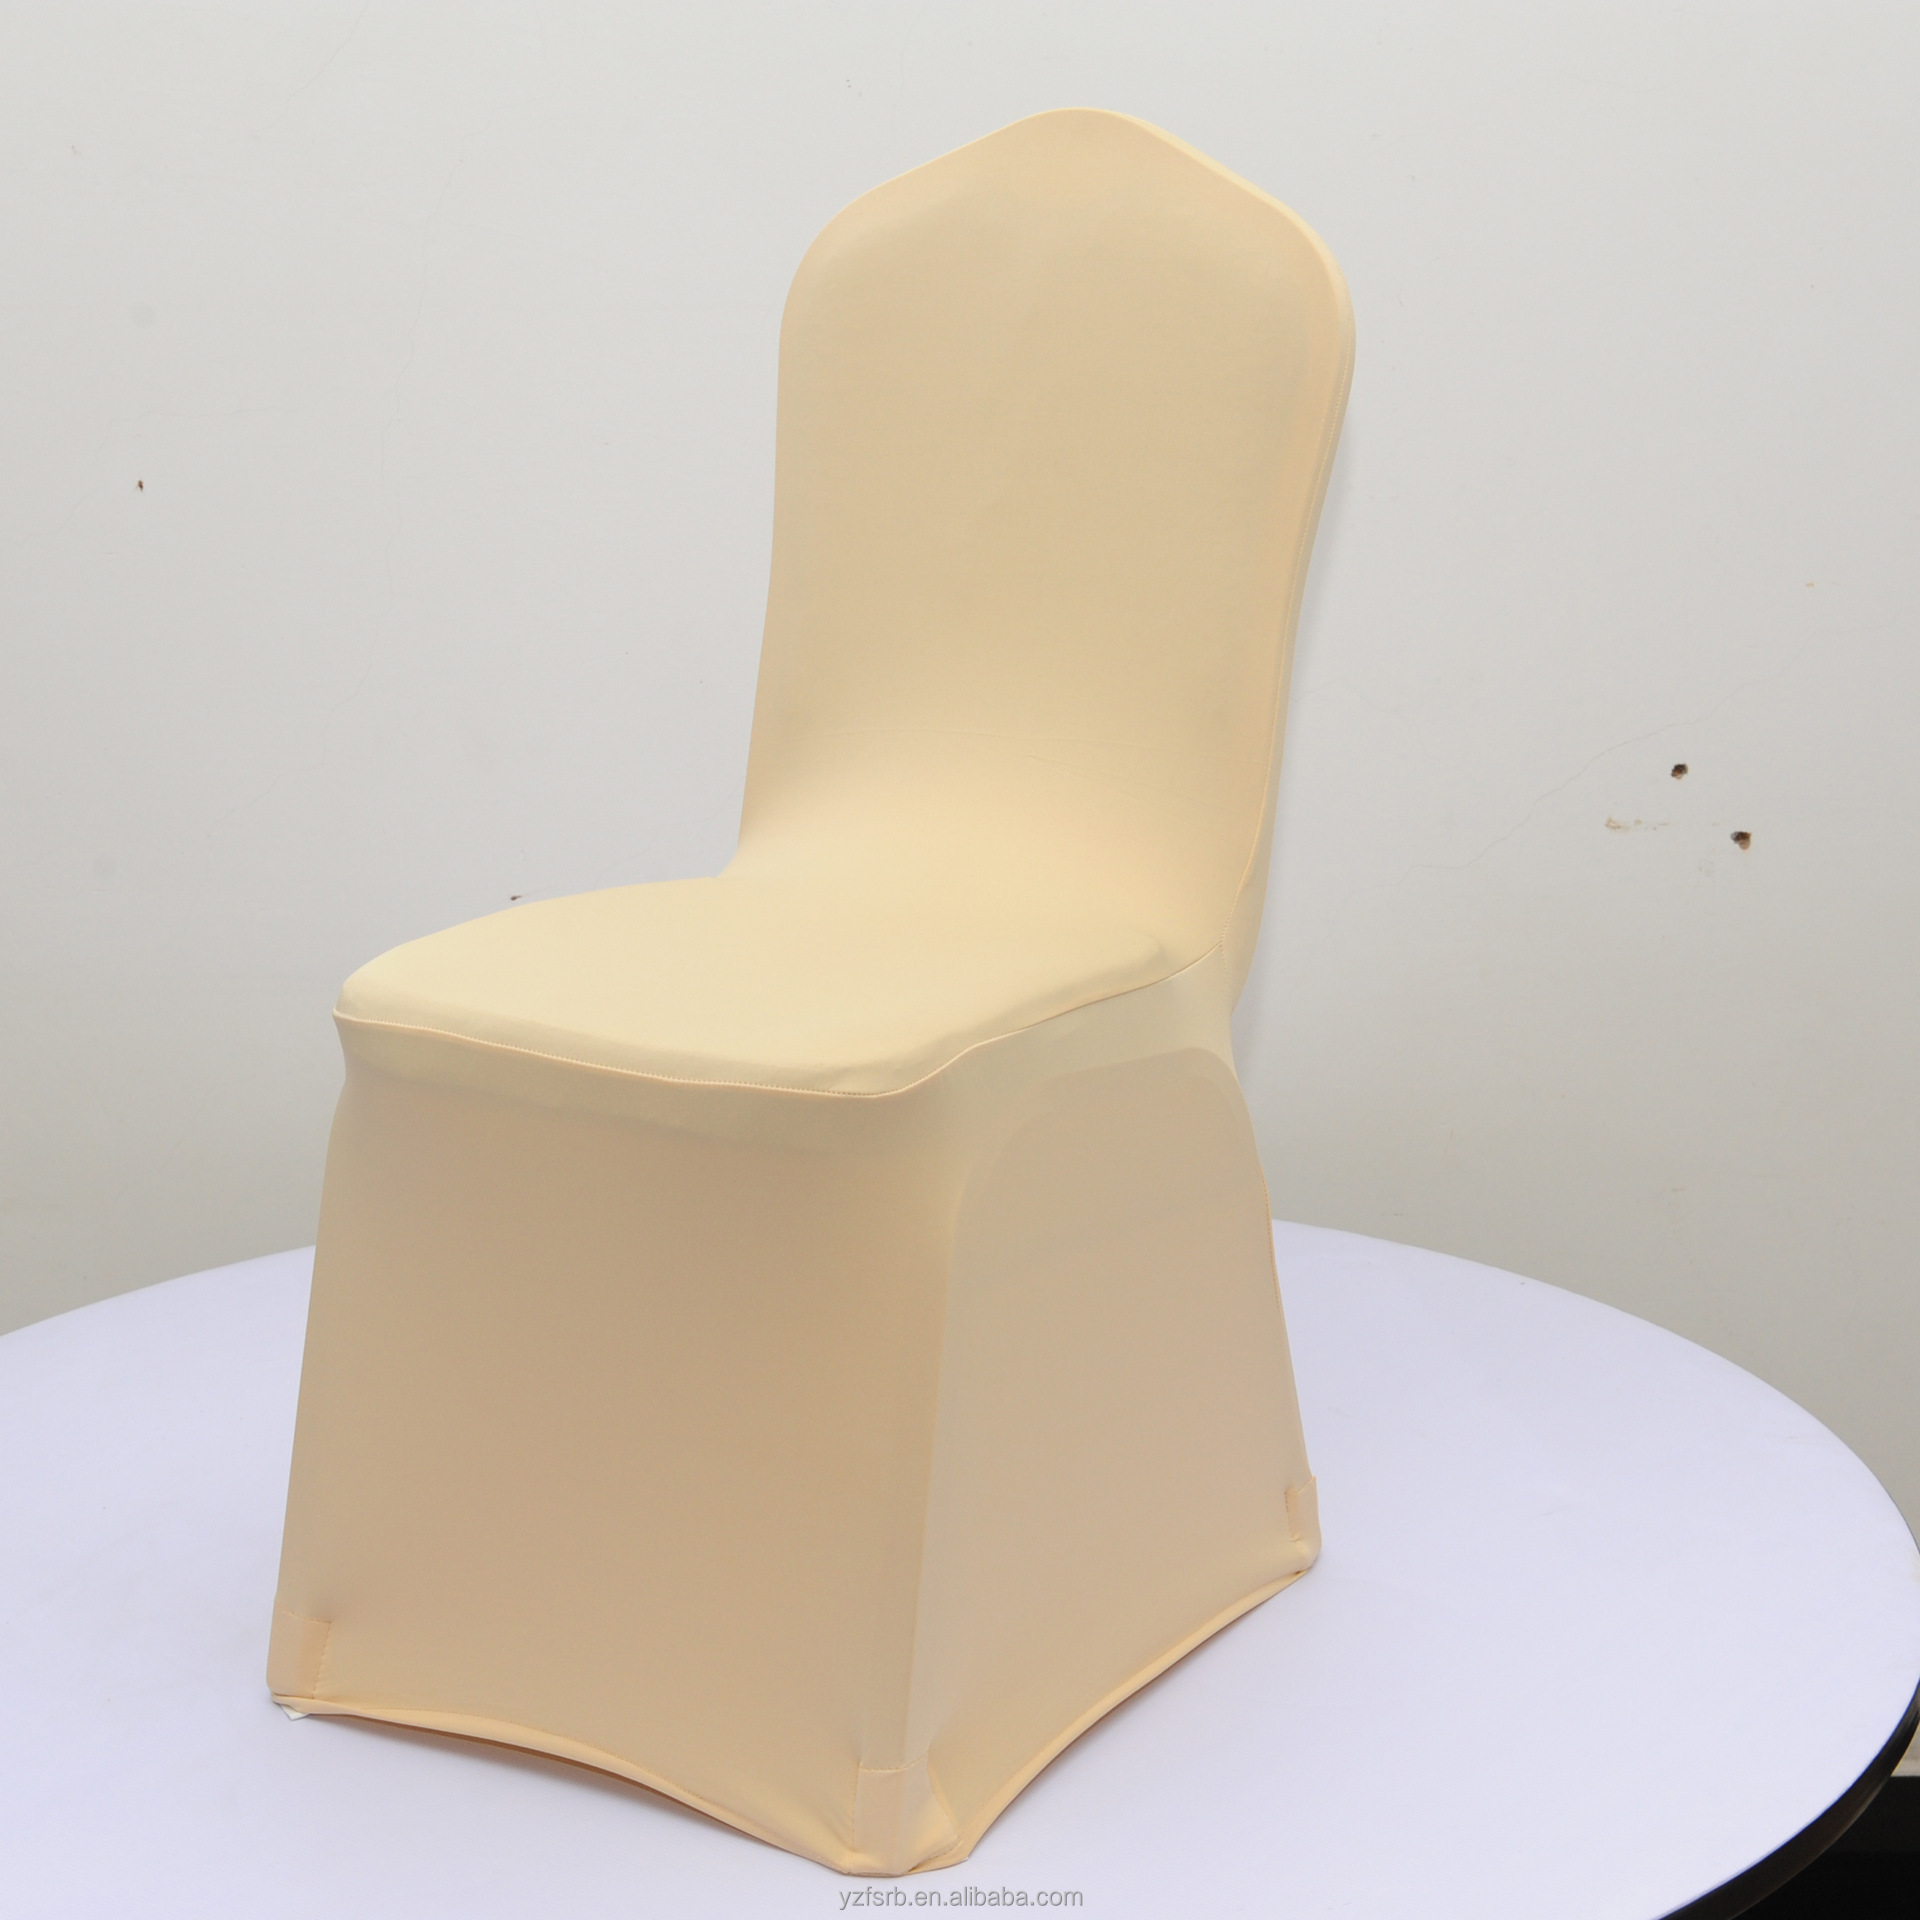 Tub Chair Covers To Buy Tub Chair Covers To Buy Suppliers and